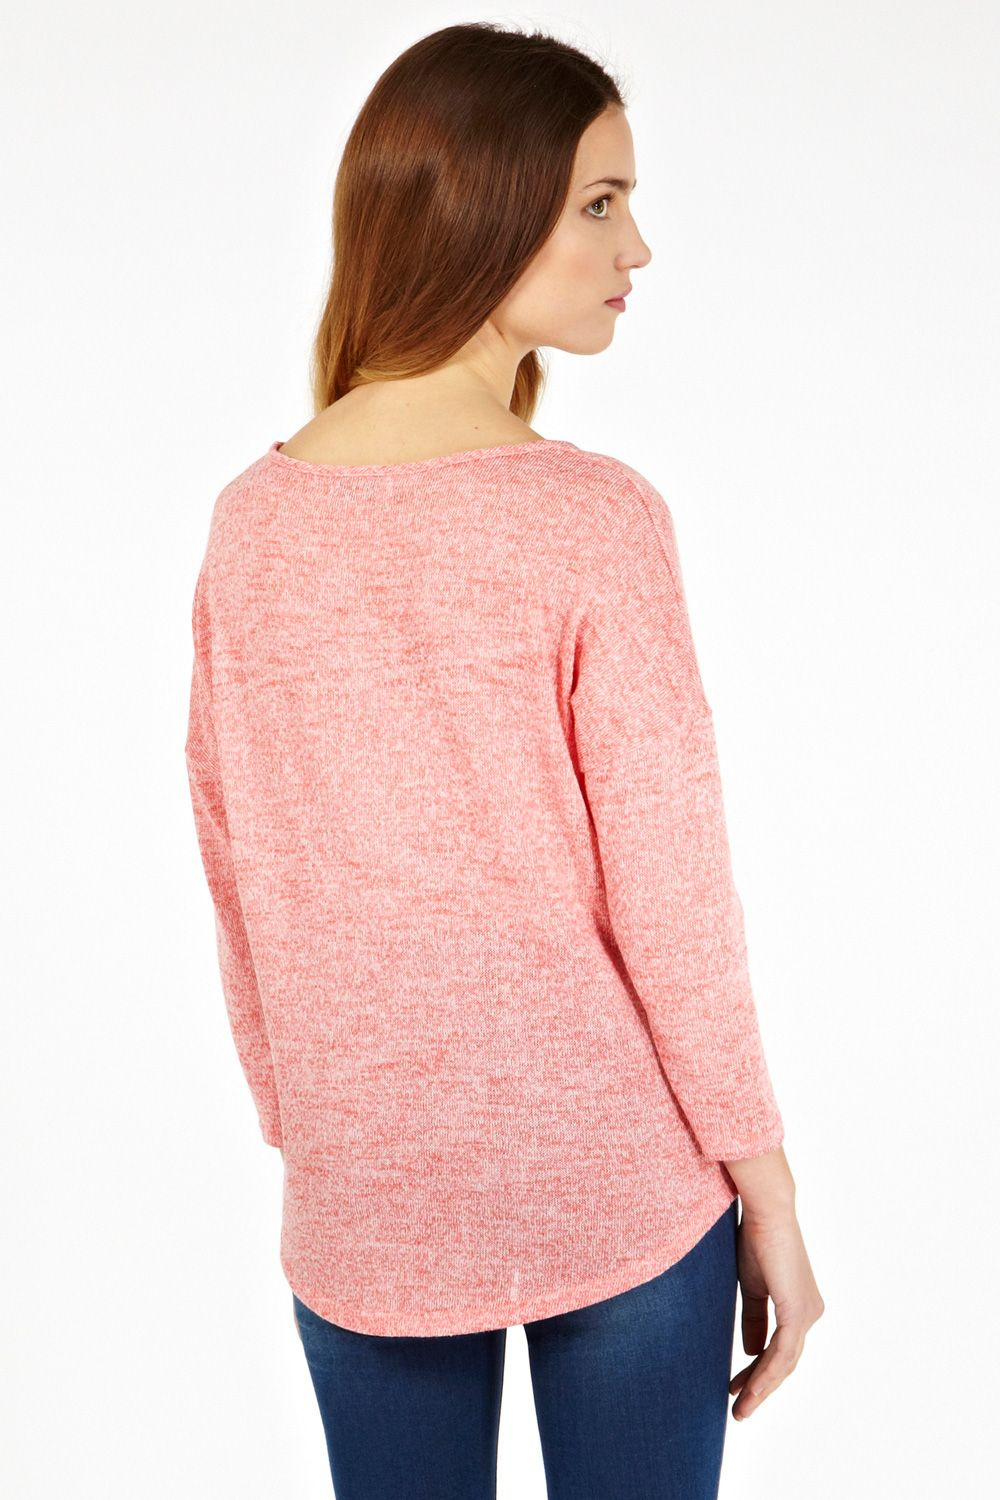 Cut and sew marl sweat top